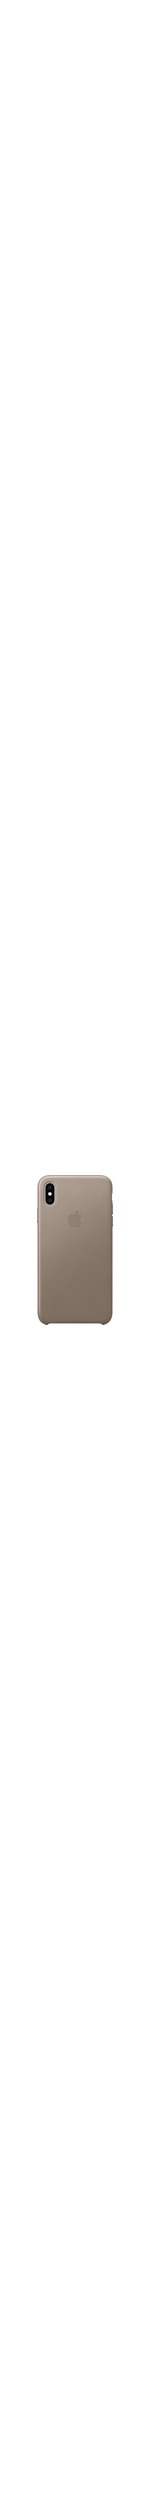 Apple Case for Apple iPhone XS Max Smartphone - Taupe